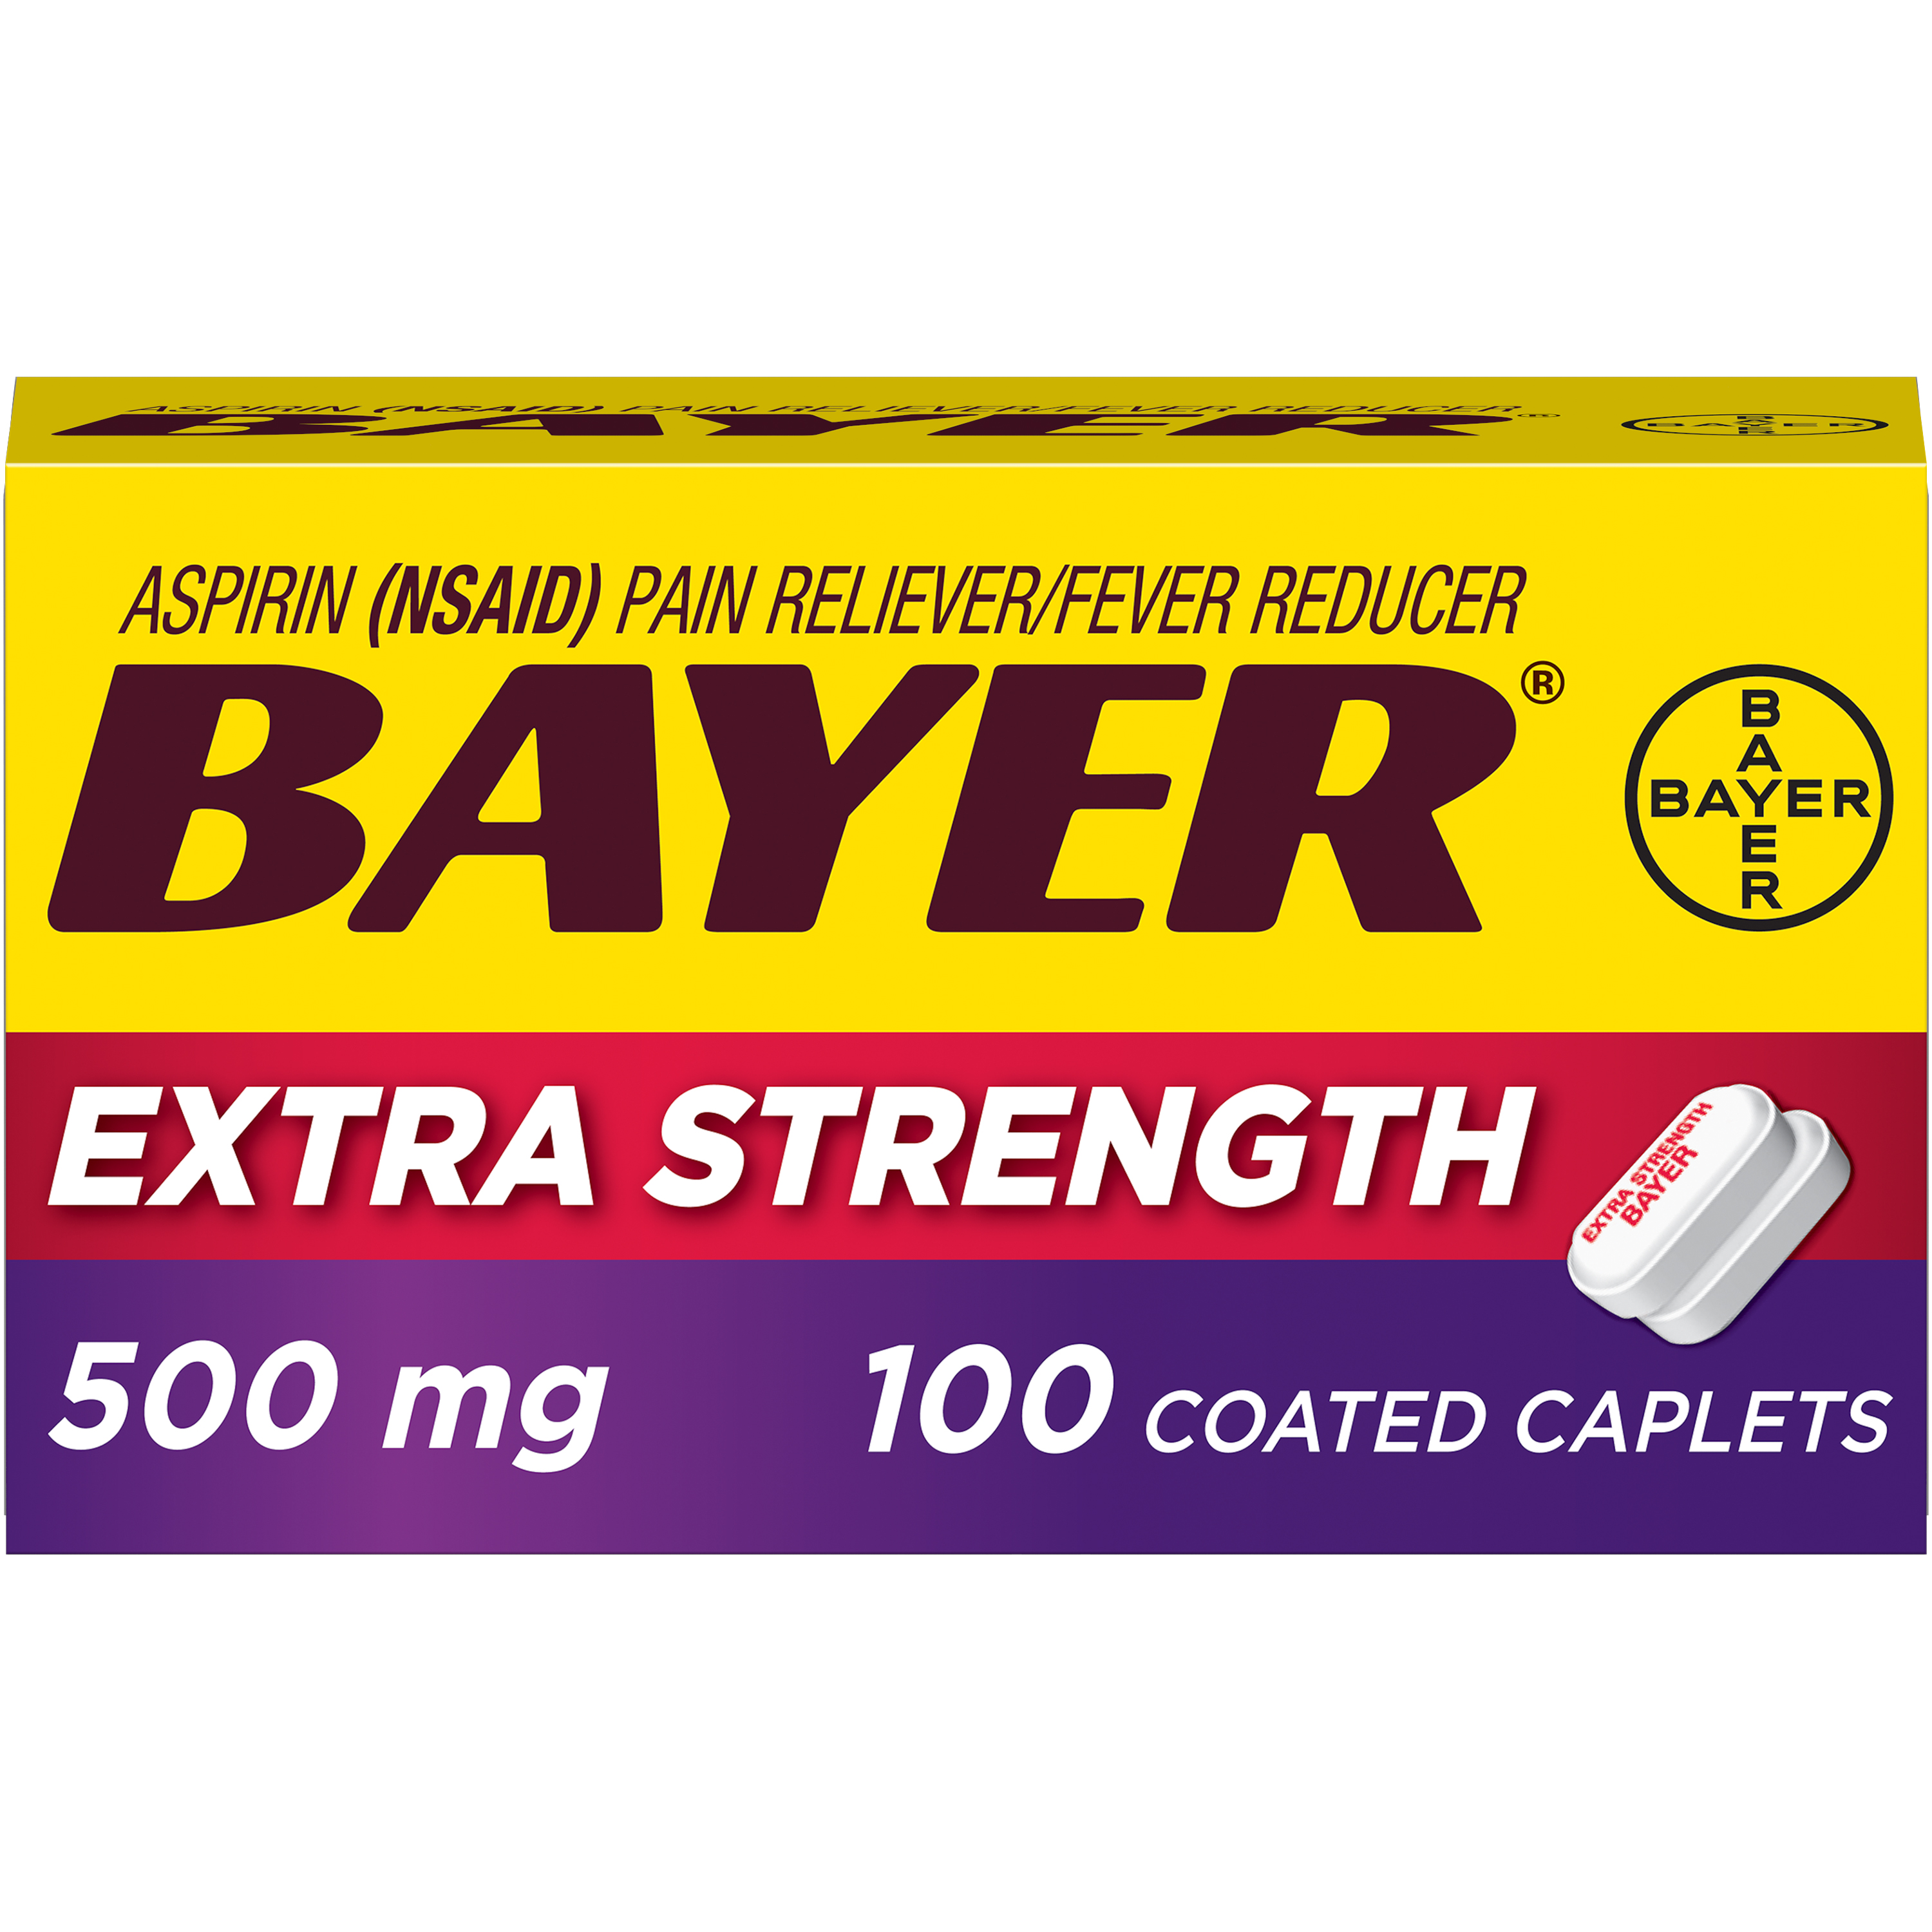 Bayer Extra Strength Pain Reliever Aspirin, 500mg Coated Tablets, 100 Ct